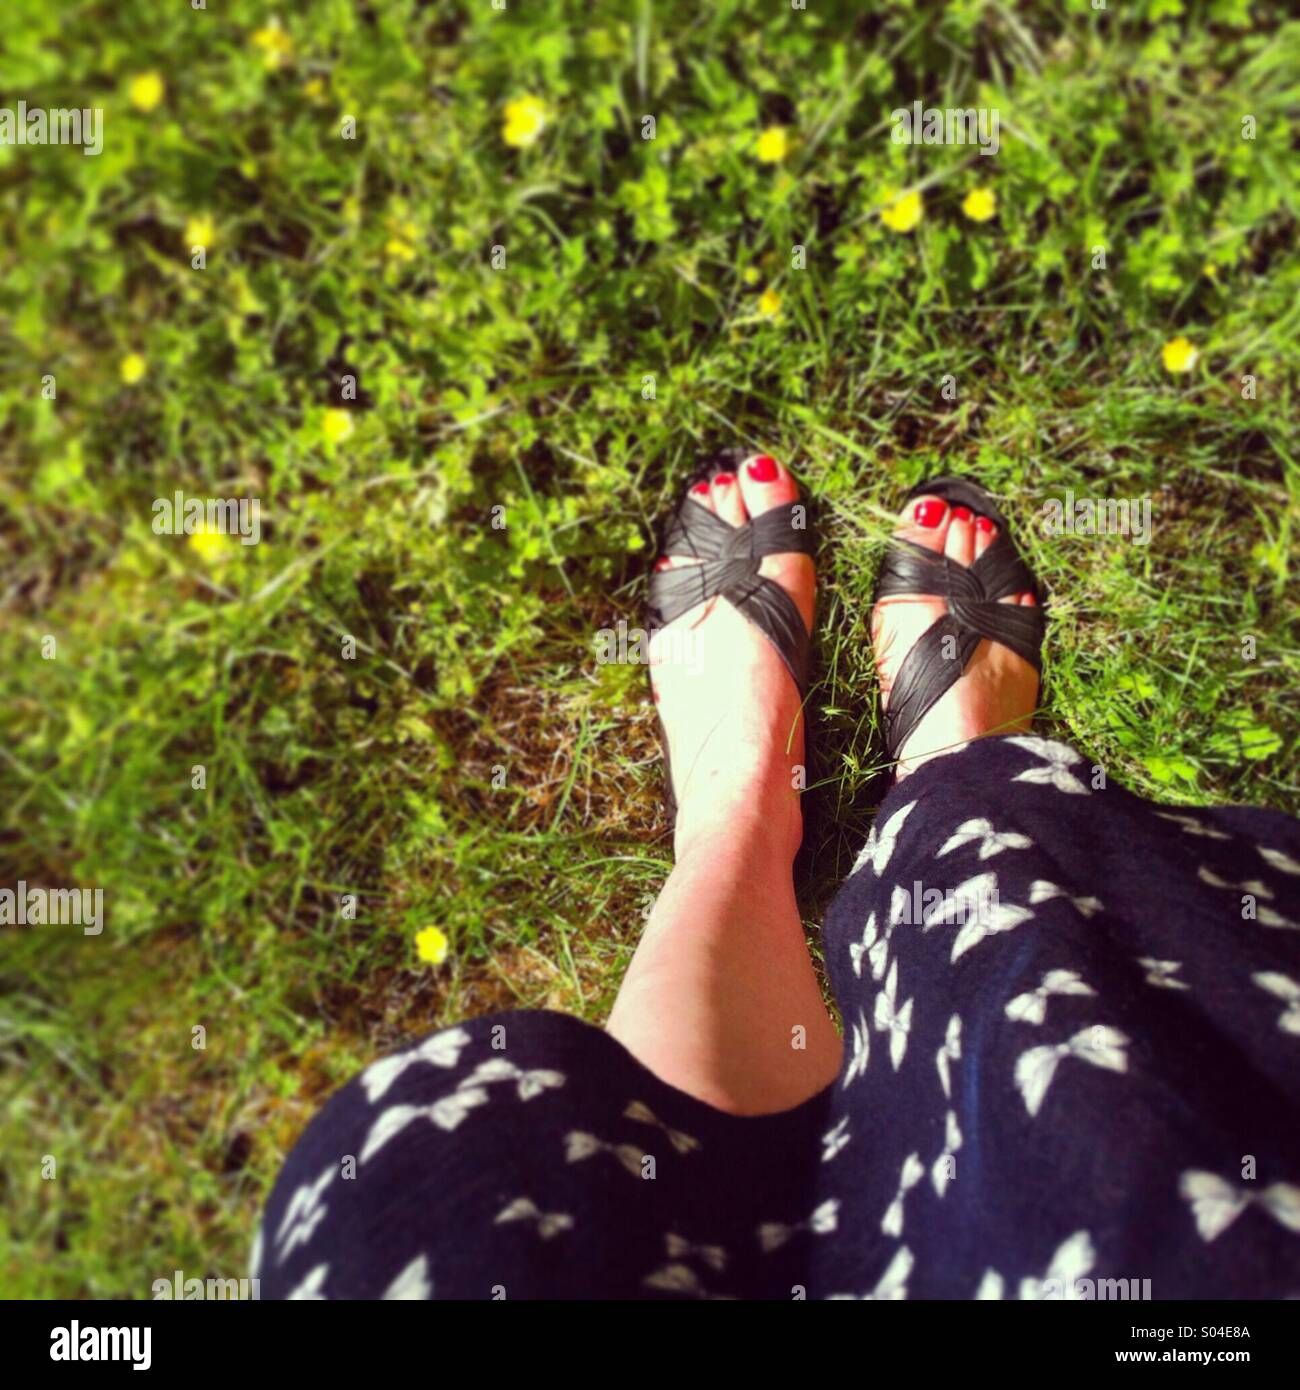 Looking down at feet in sandals and a summer dress standing on a LAN with small yellow flowers Stock Photo